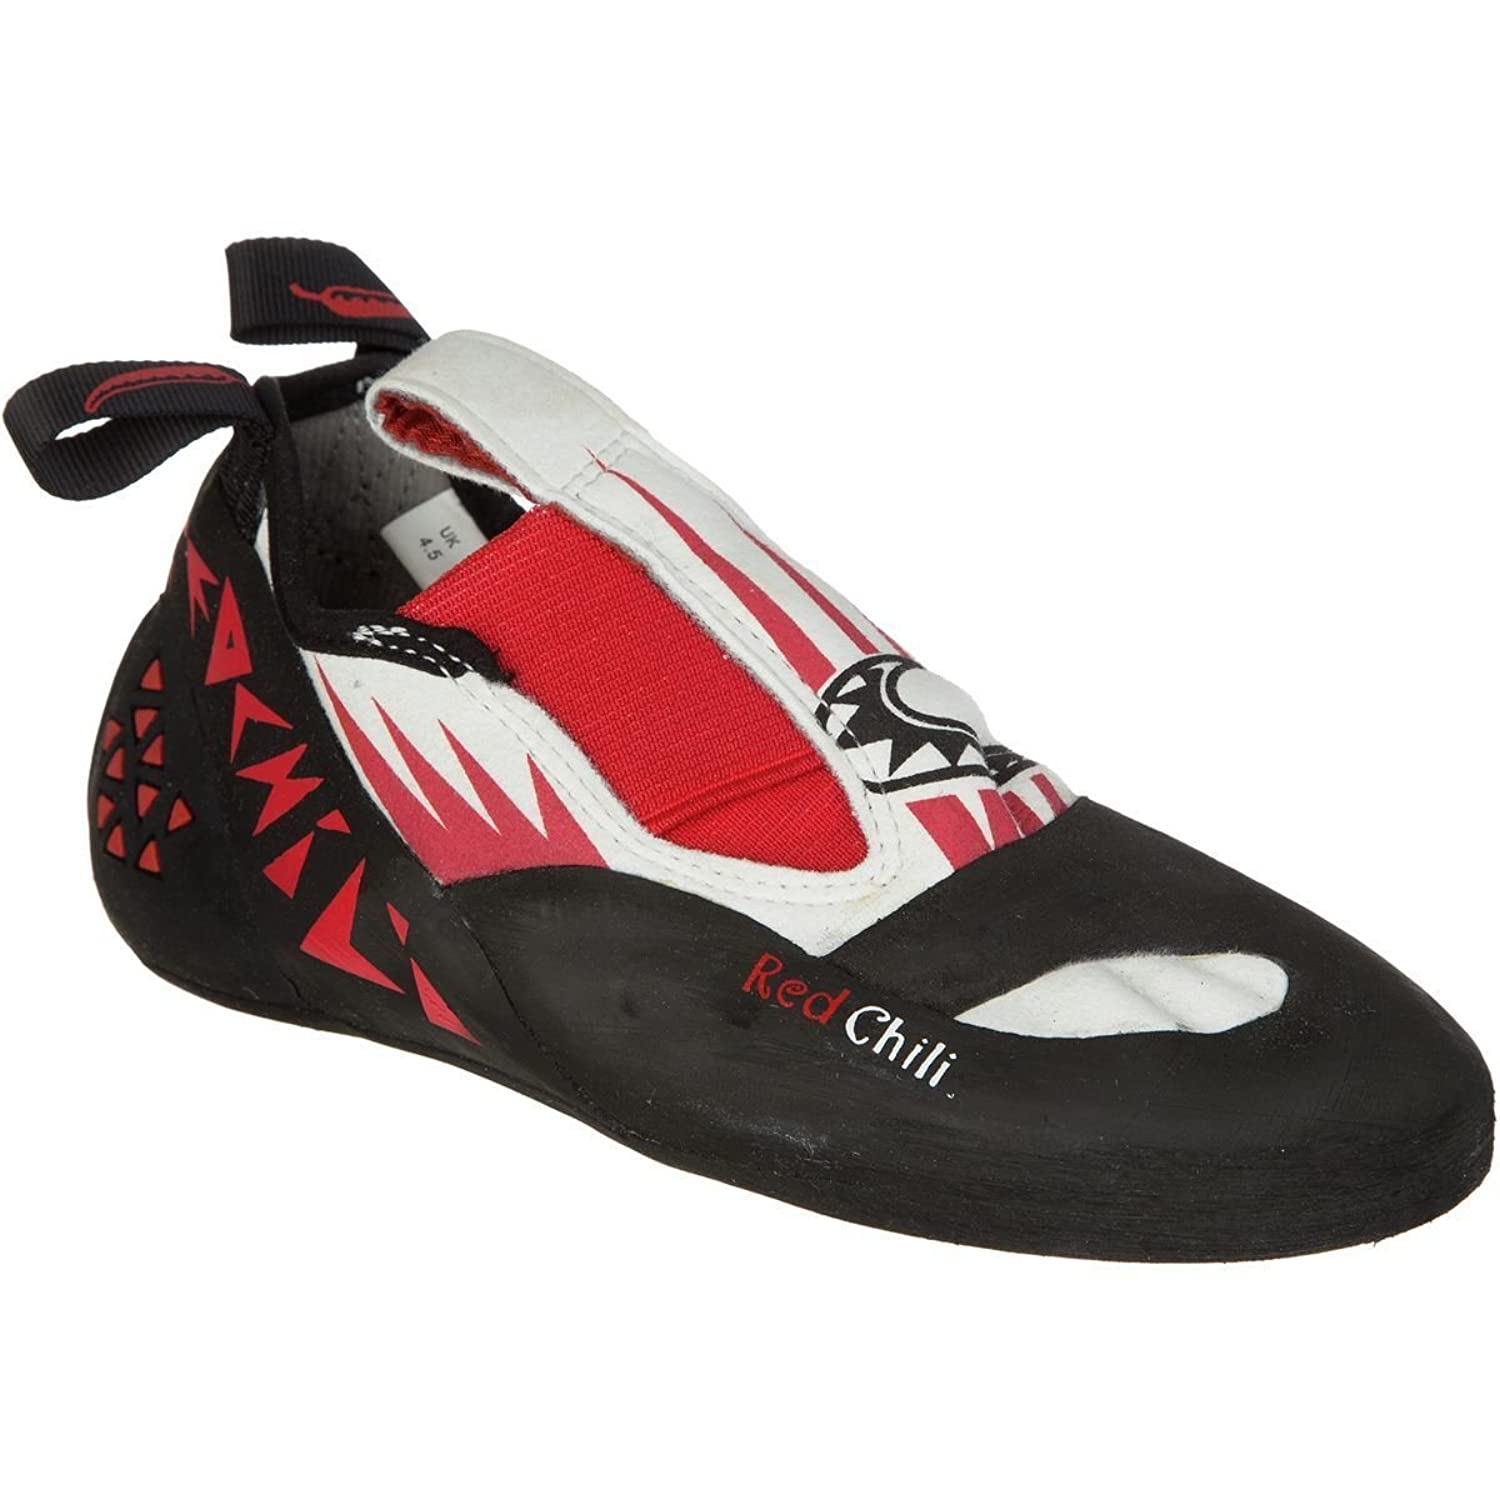 fa53c7aad4ac2 Amazon.com | Red Chili Nacho Climbing Shoe | Climbing